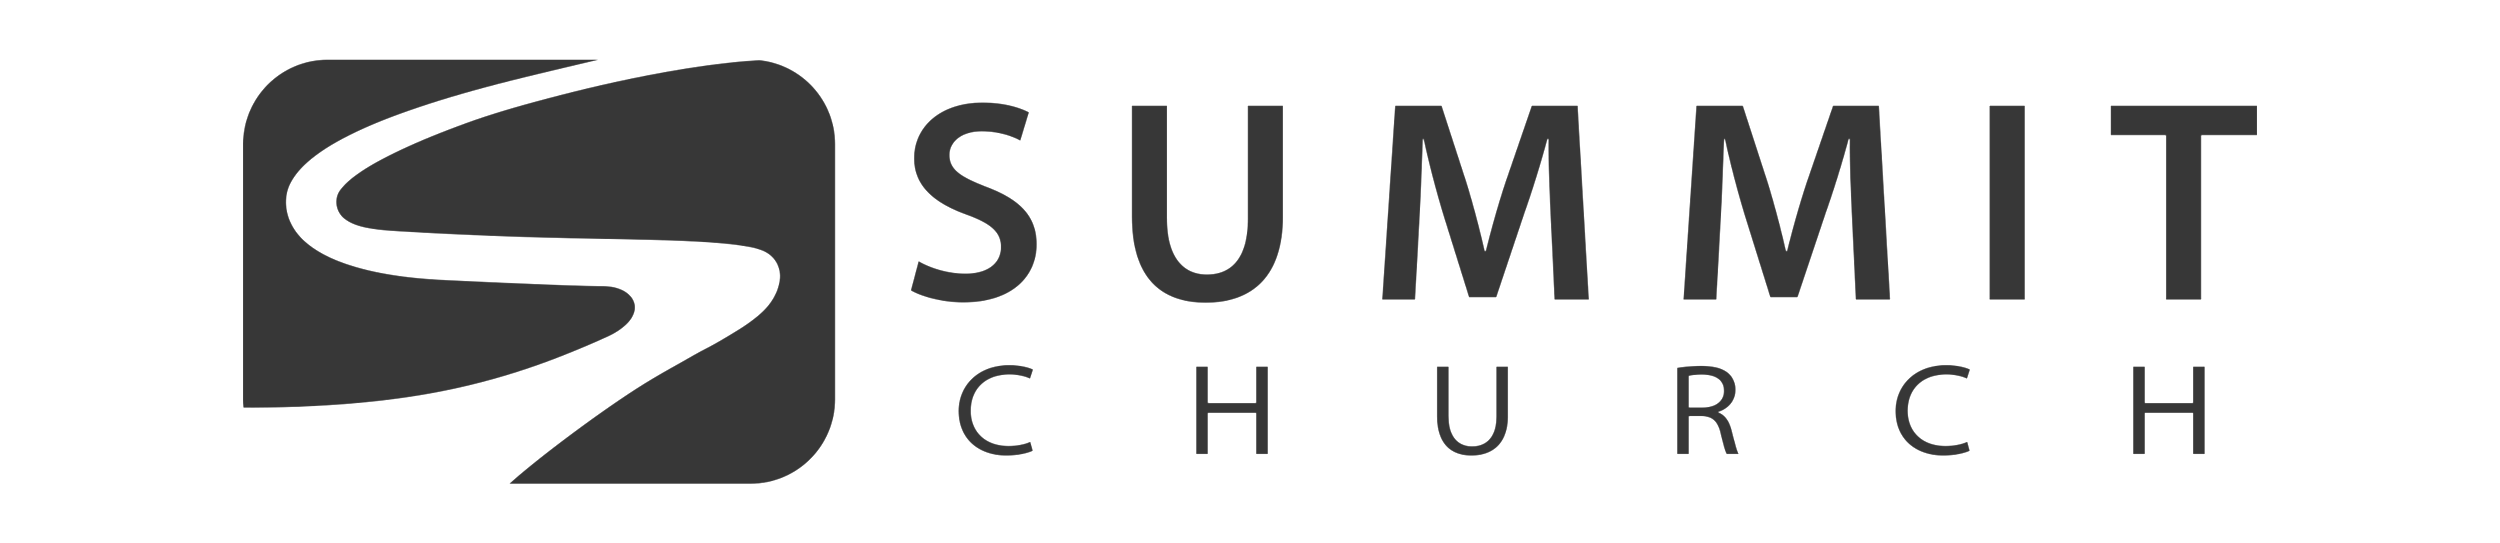 NEW_SUMMIT LOGO GRAY margin.png